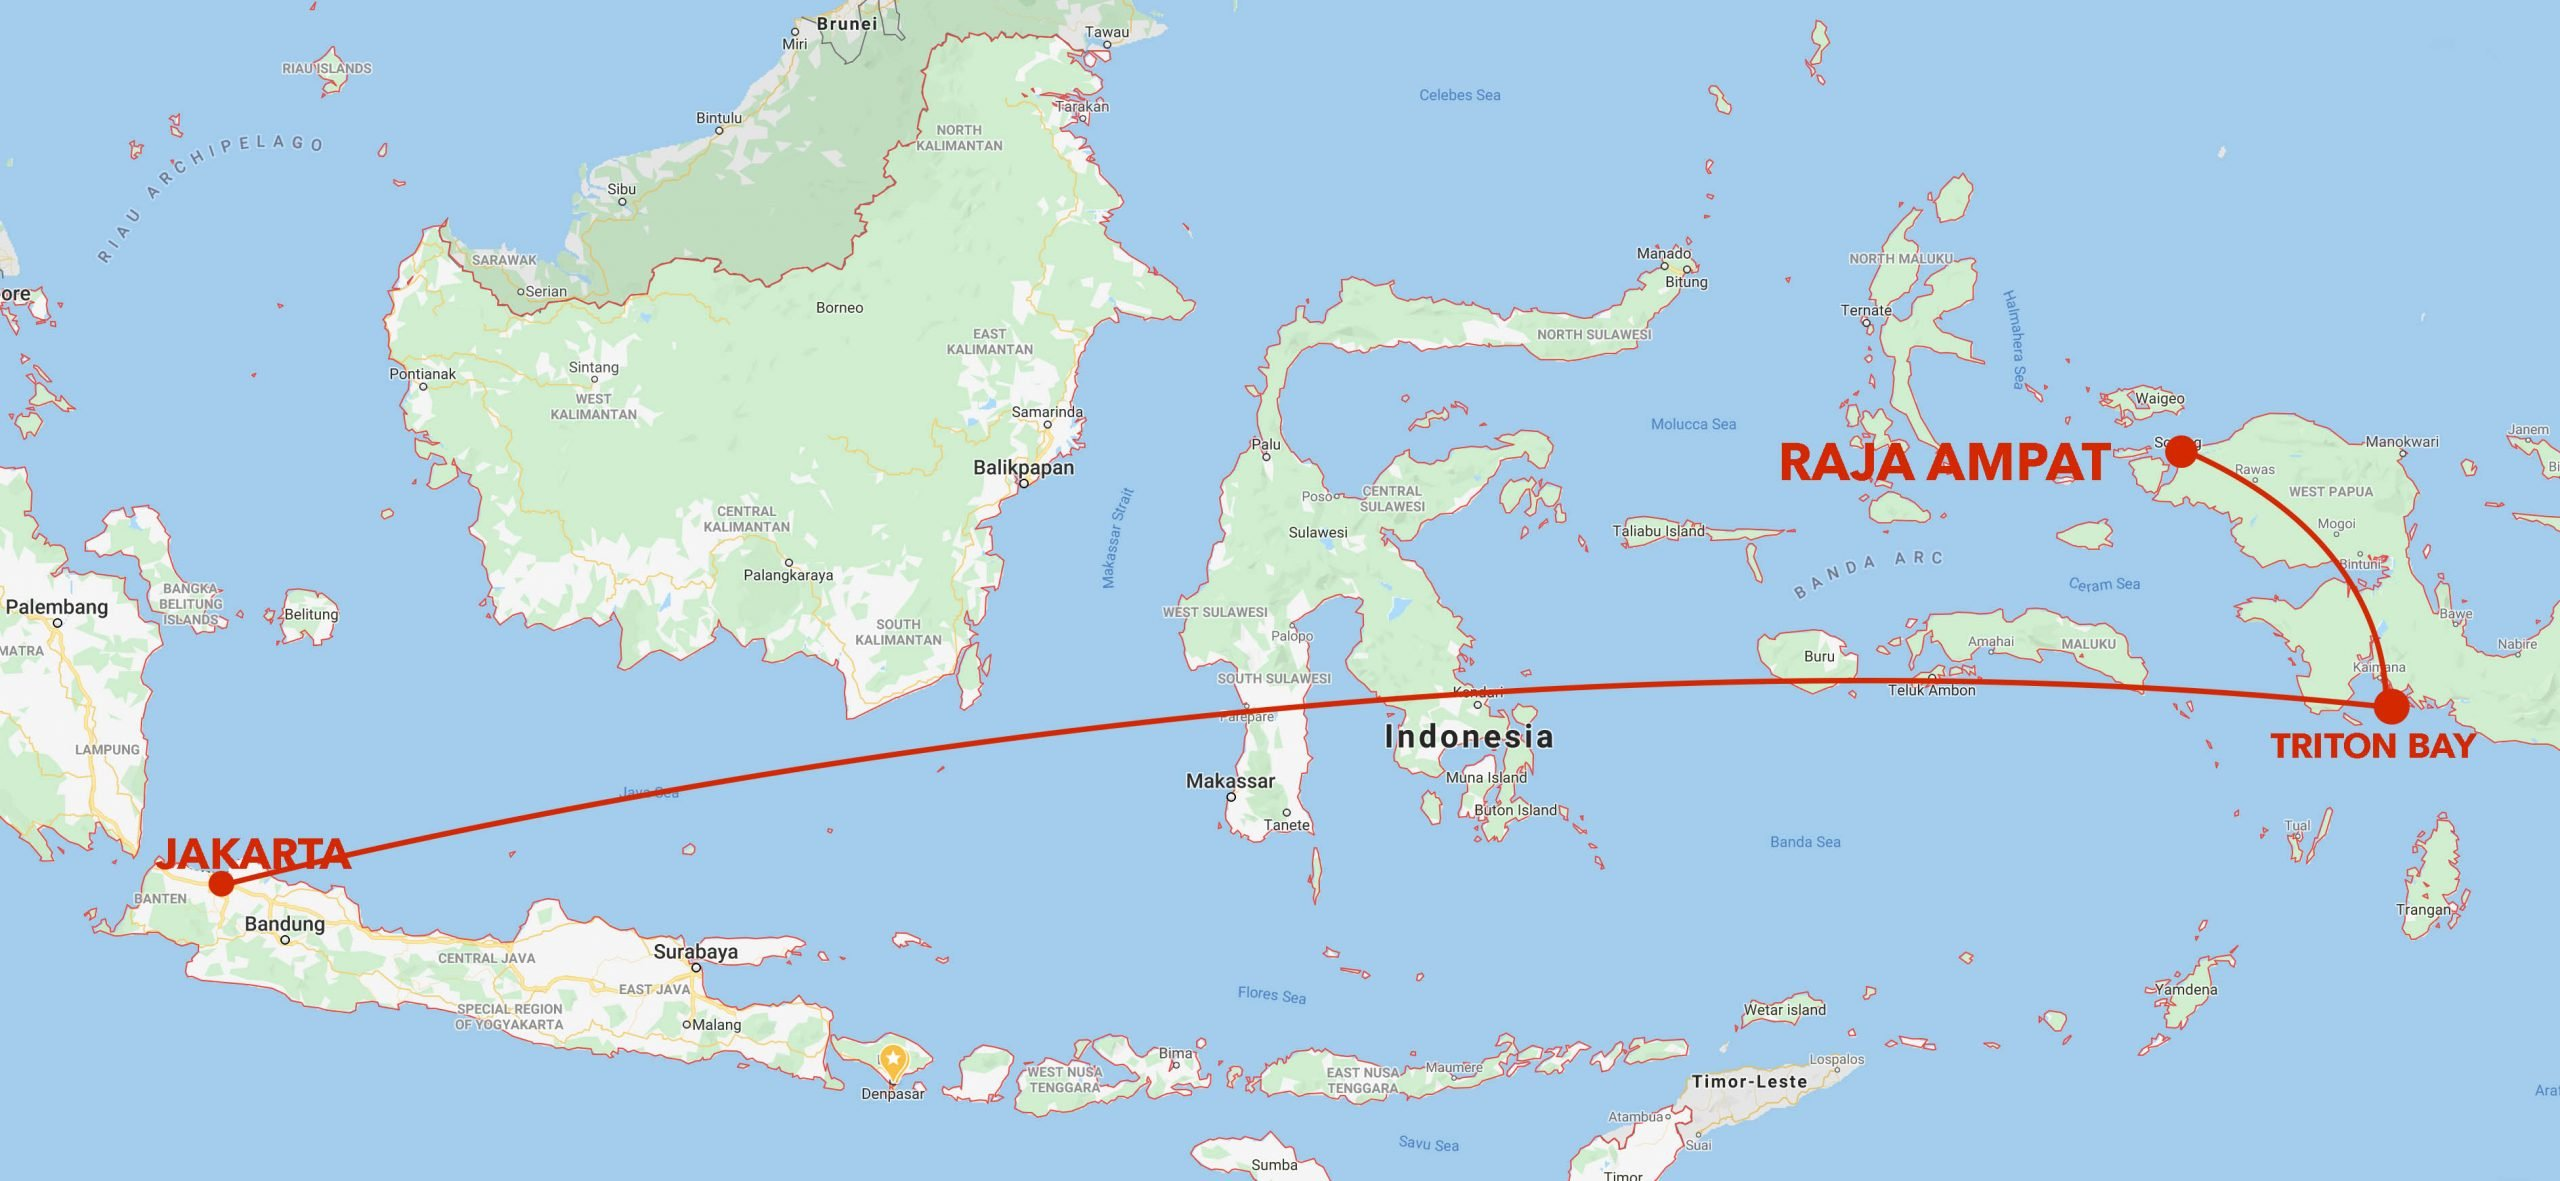 Triton Bay to Raja Ampat snorkel safari itinerary map